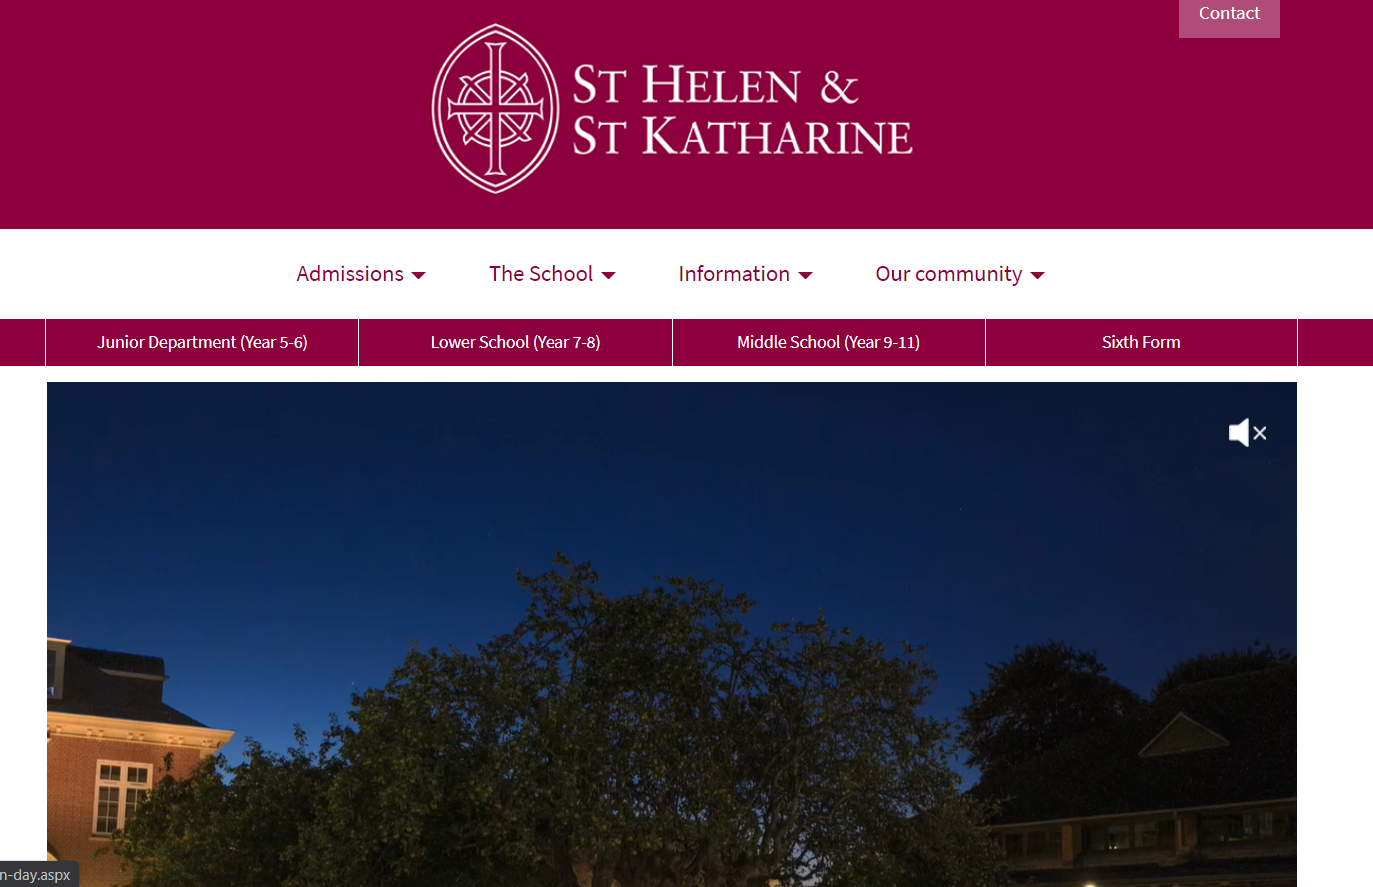 The School of St Helen and St Katharine